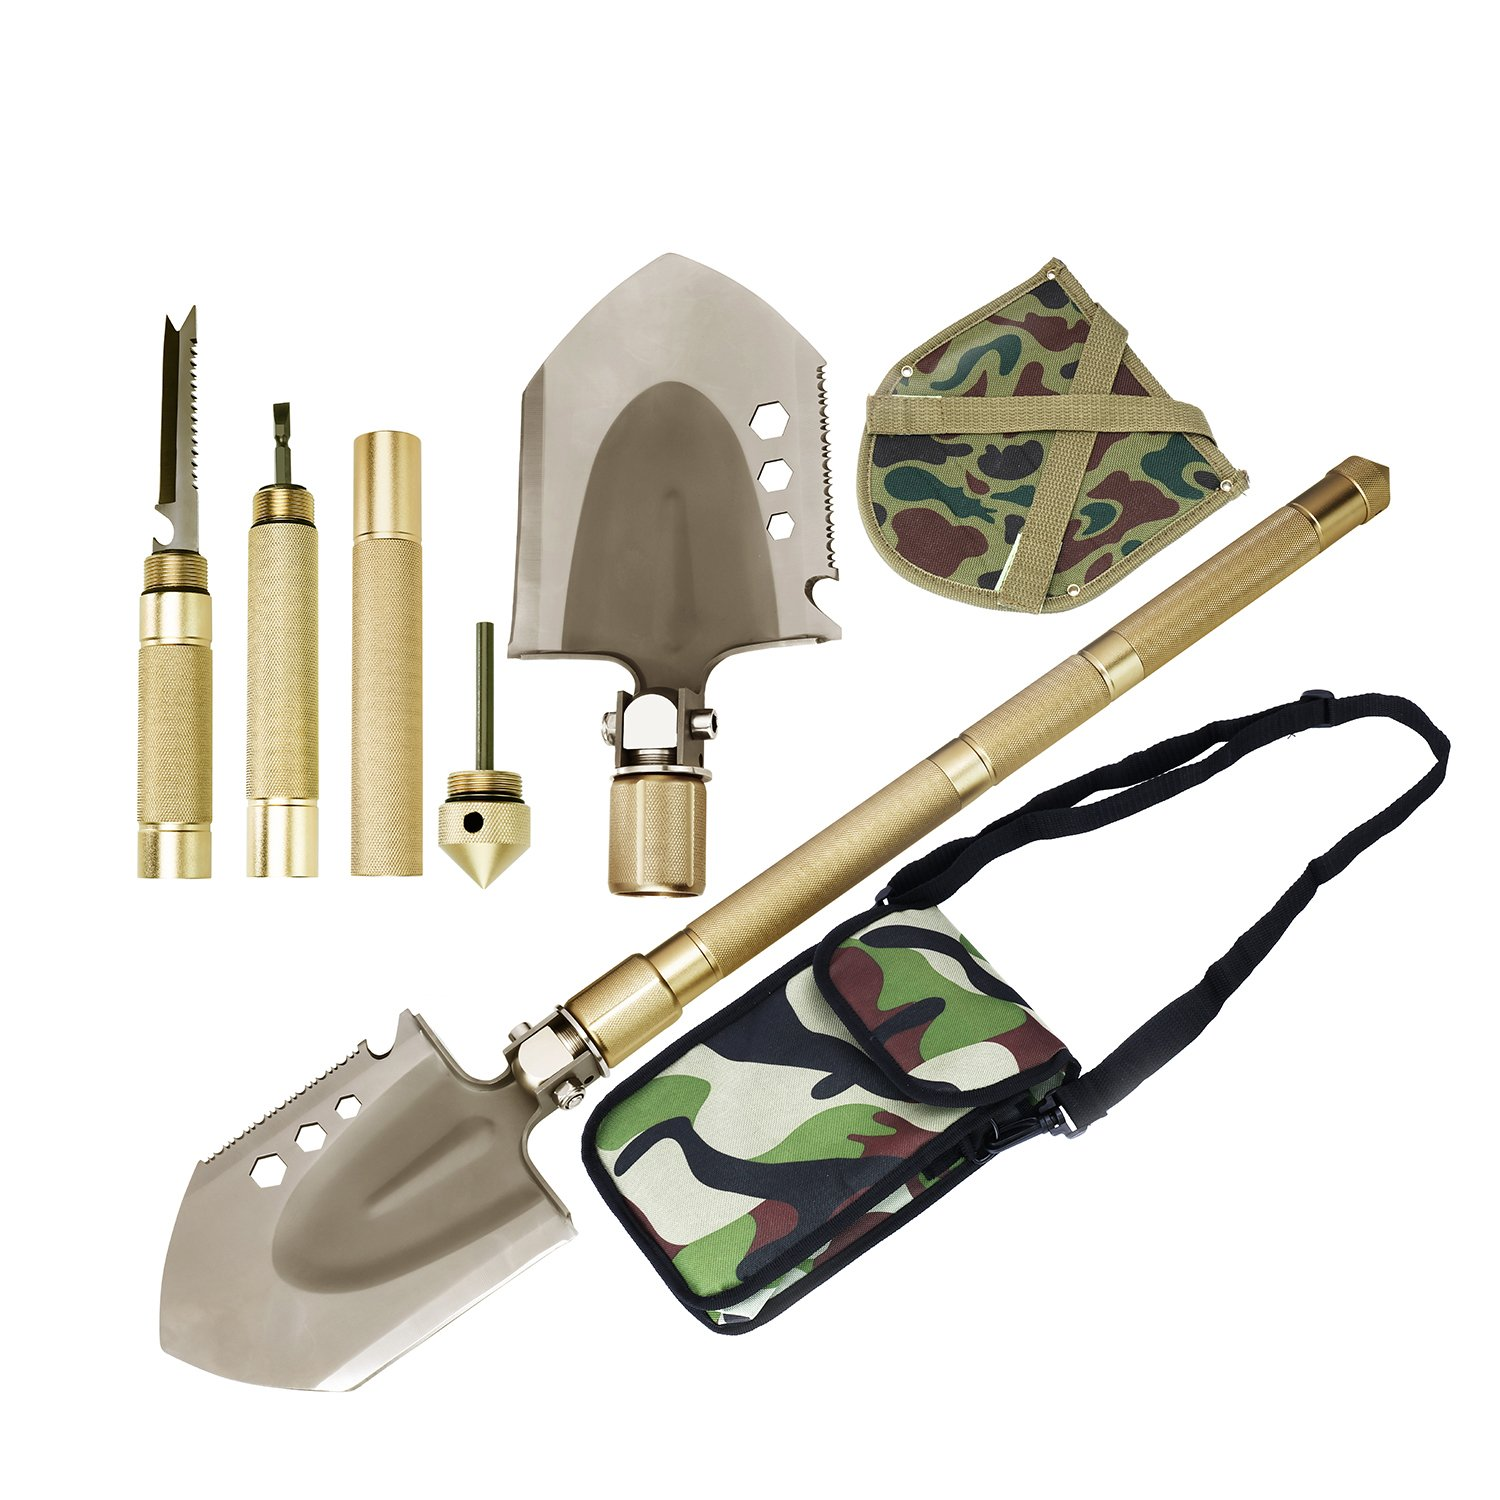 ROSE KULI Military Folding Shovel Multitool - Compact Backpacking Tactical Entrenching Tool Hunting Camping Gear Snow Car Shovel with Carrying Case by ROSE KULI (Image #1)